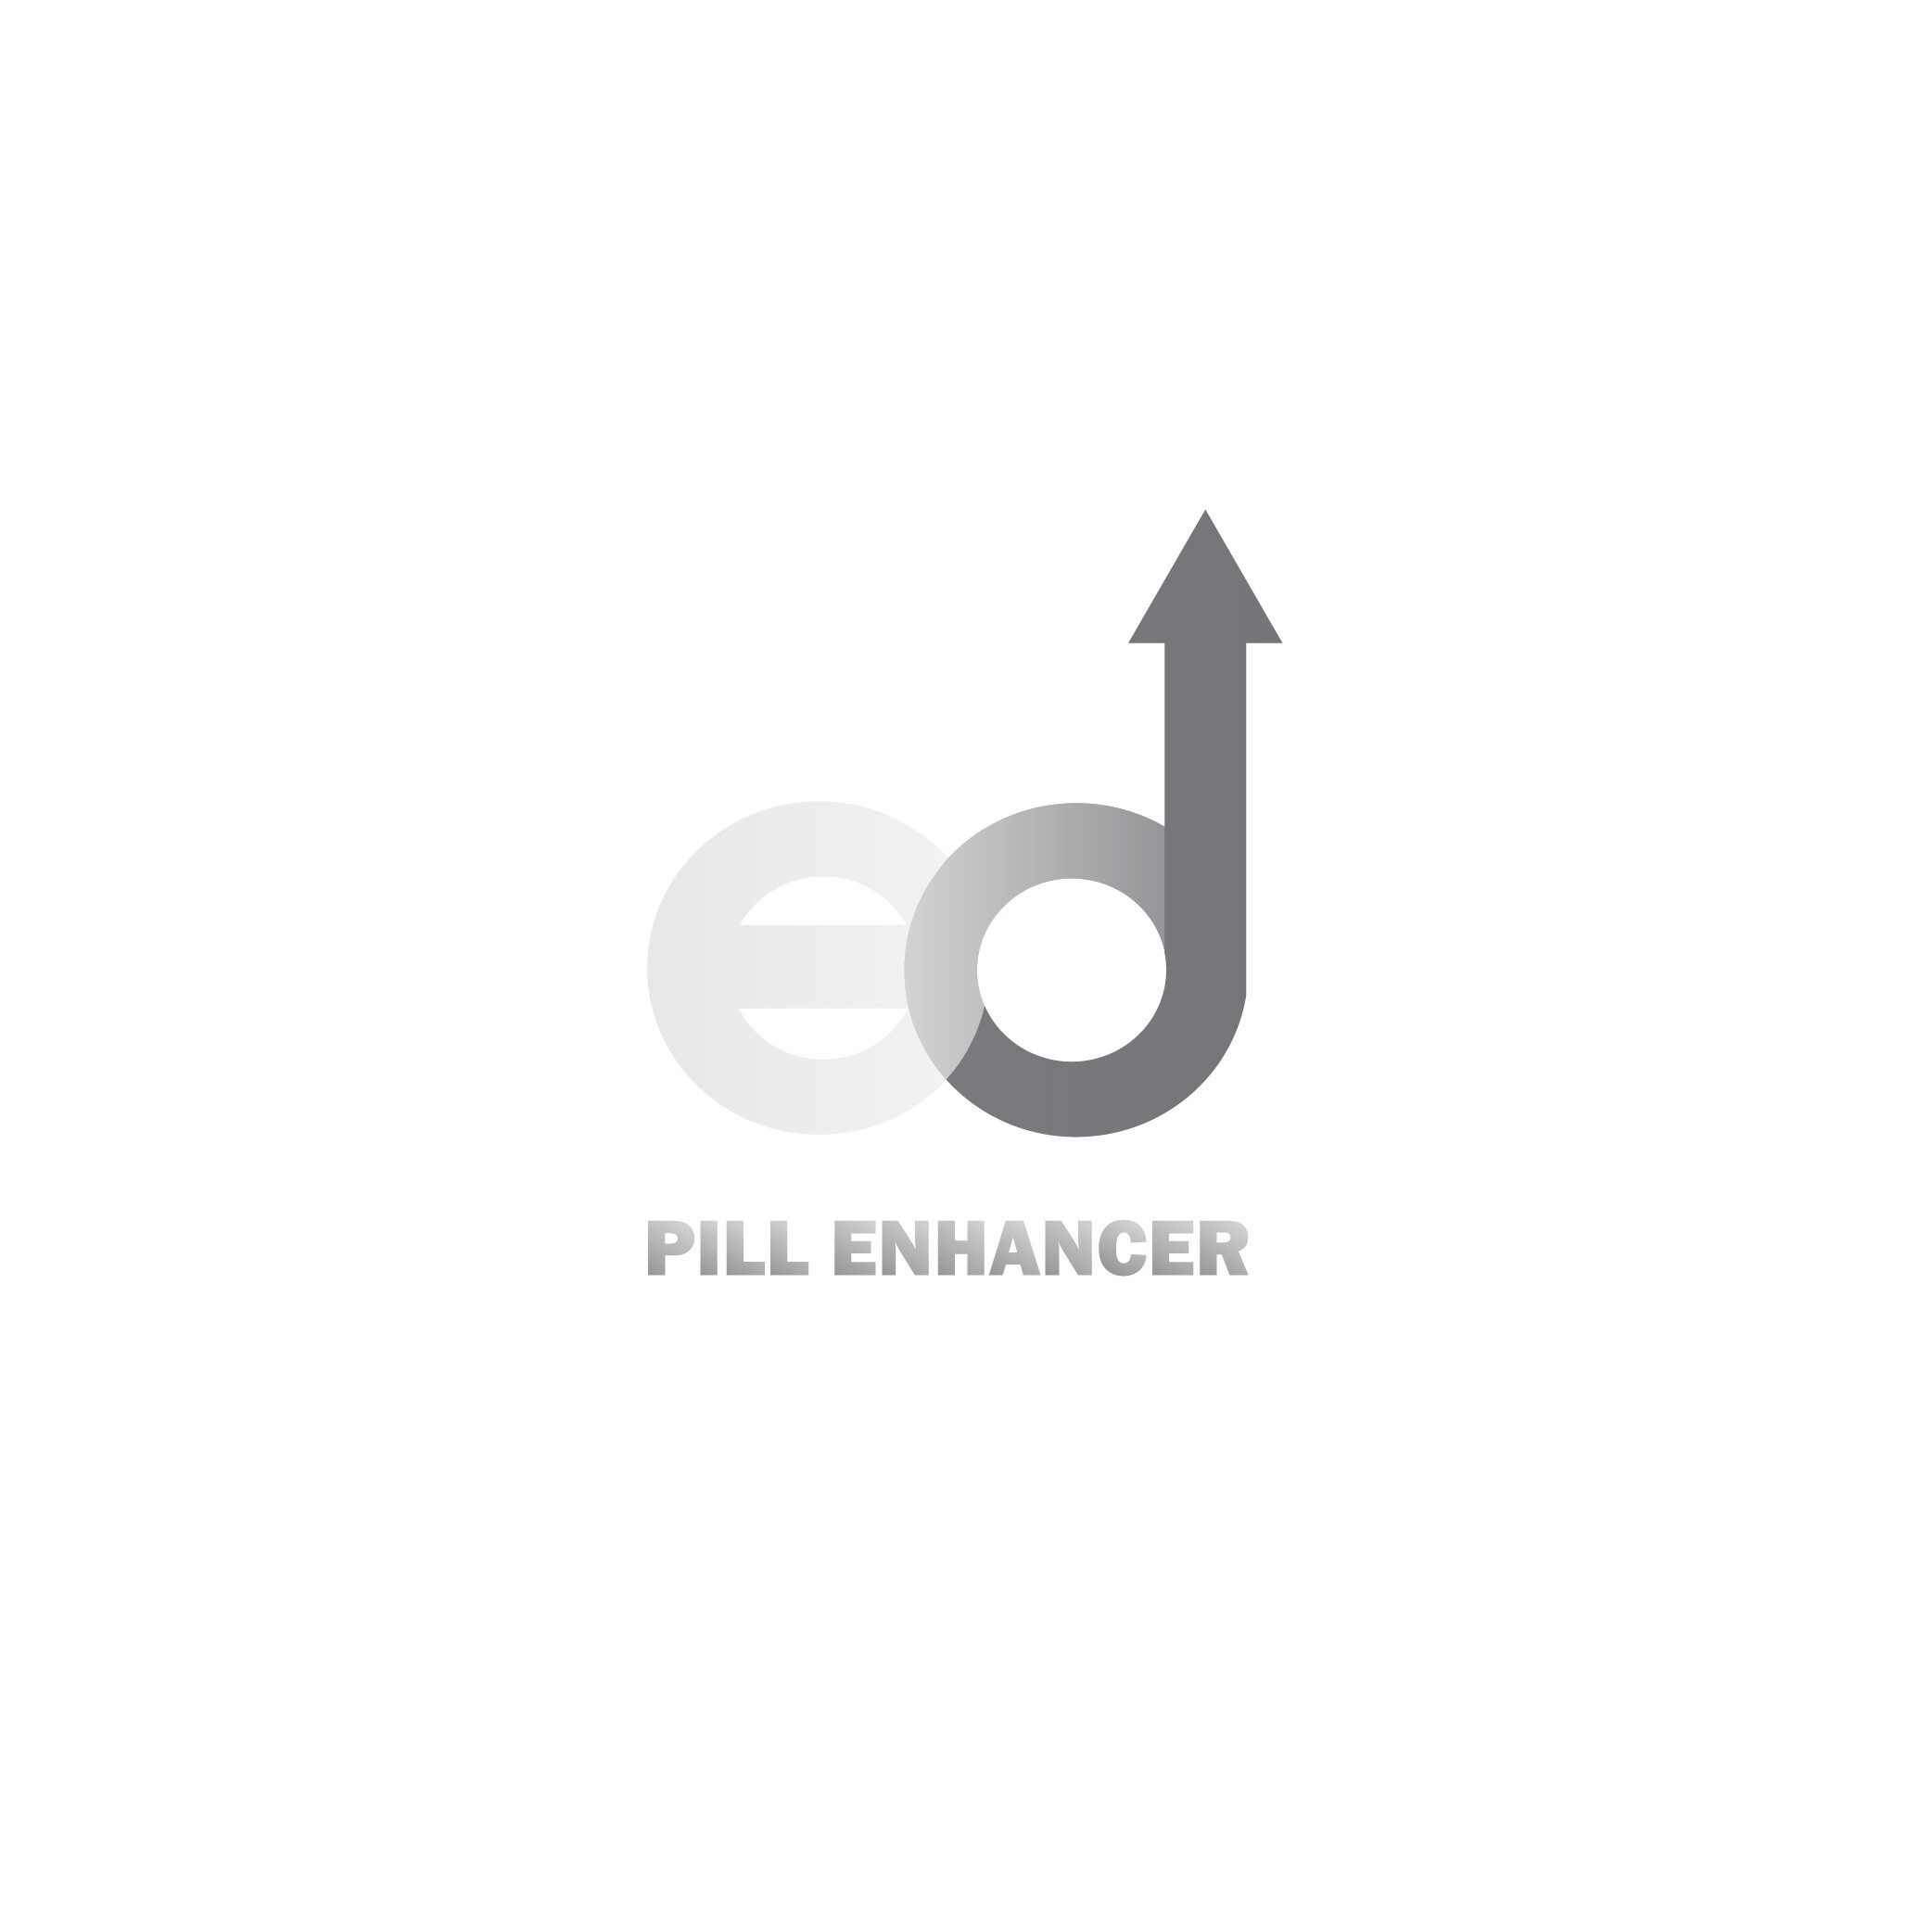 Professional grade supplement used to enhance the ED Pill experience